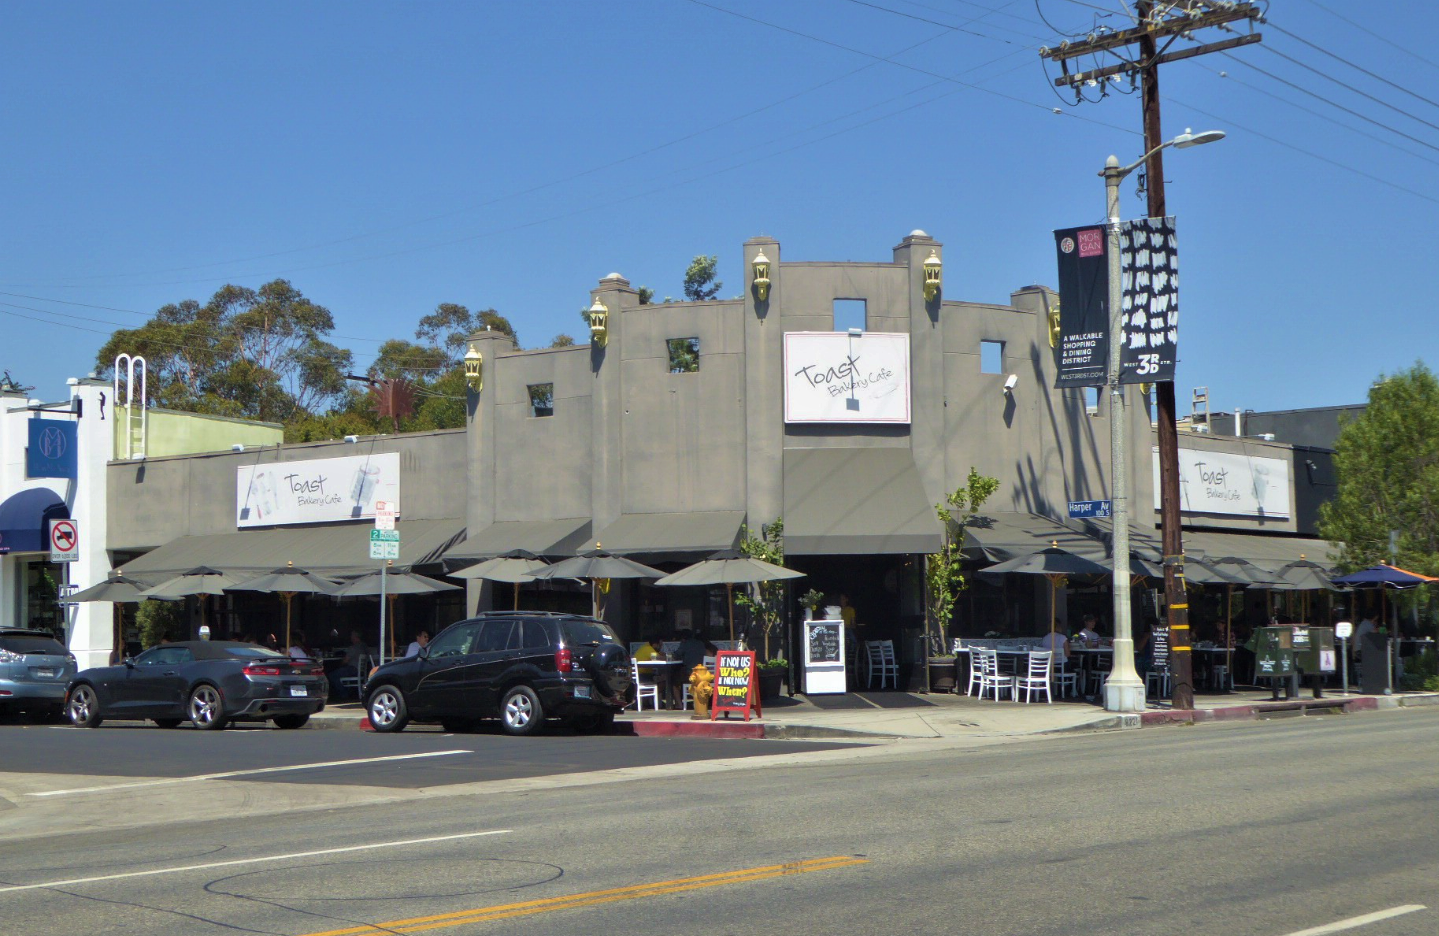 COLDWELL BANKER COMMERCIAL WESTMAC ARRANGES $9.6 MILLION SALE OF HIGH STREET RETAIL IN LOS ANGELES, CA